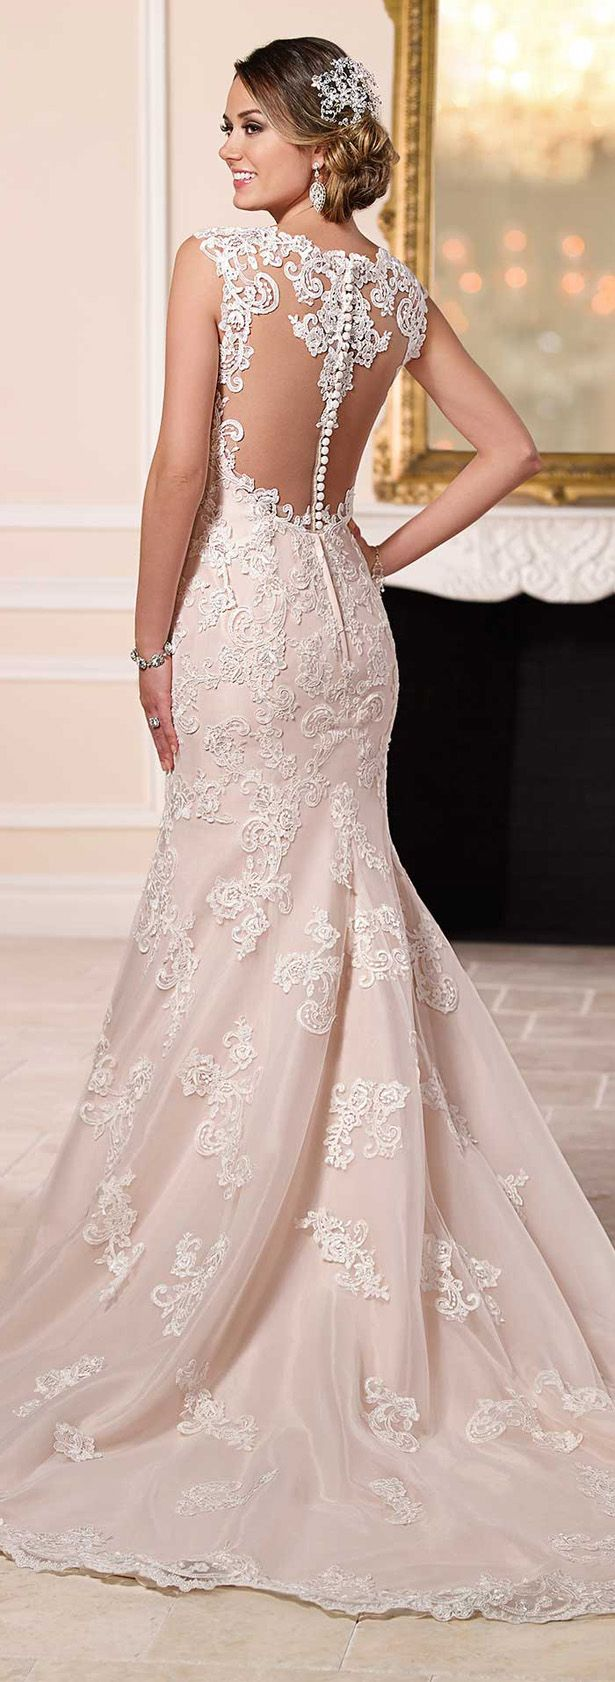 Best 25 blush wedding dresses ideas only on pinterest for Cream colored lace wedding dresses